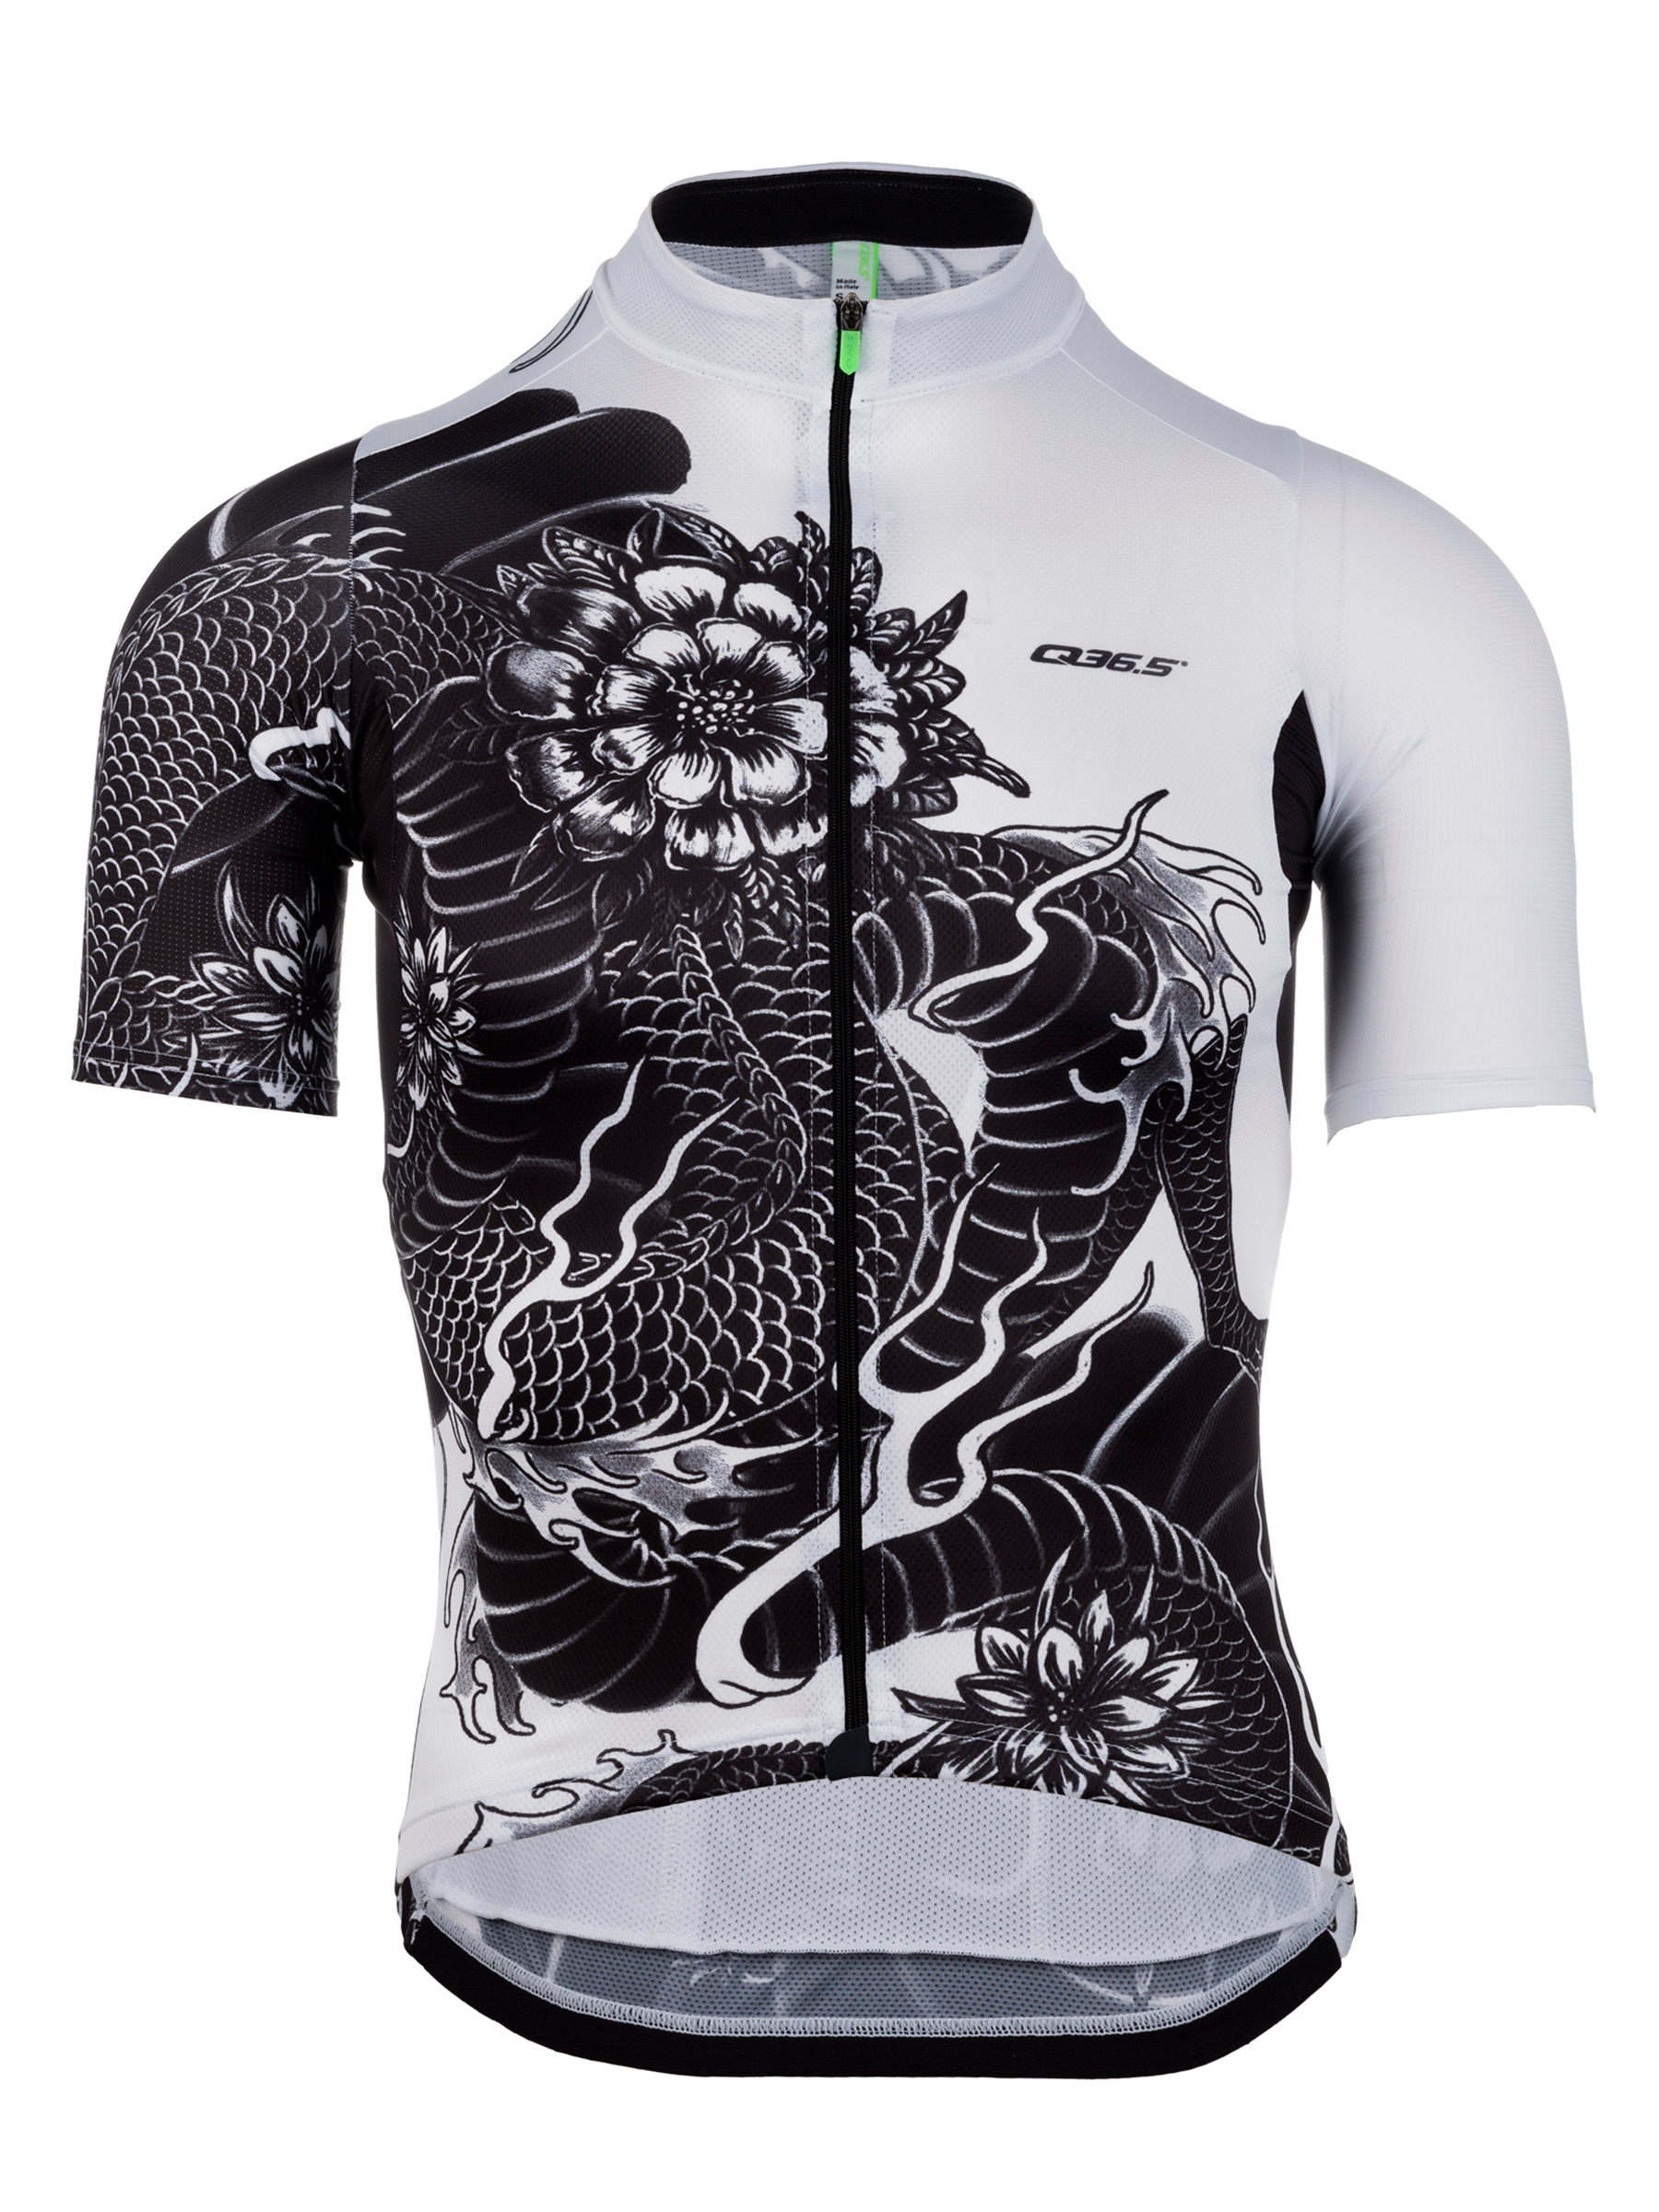 Mens cycling jersey G1 Dragon Q36.5